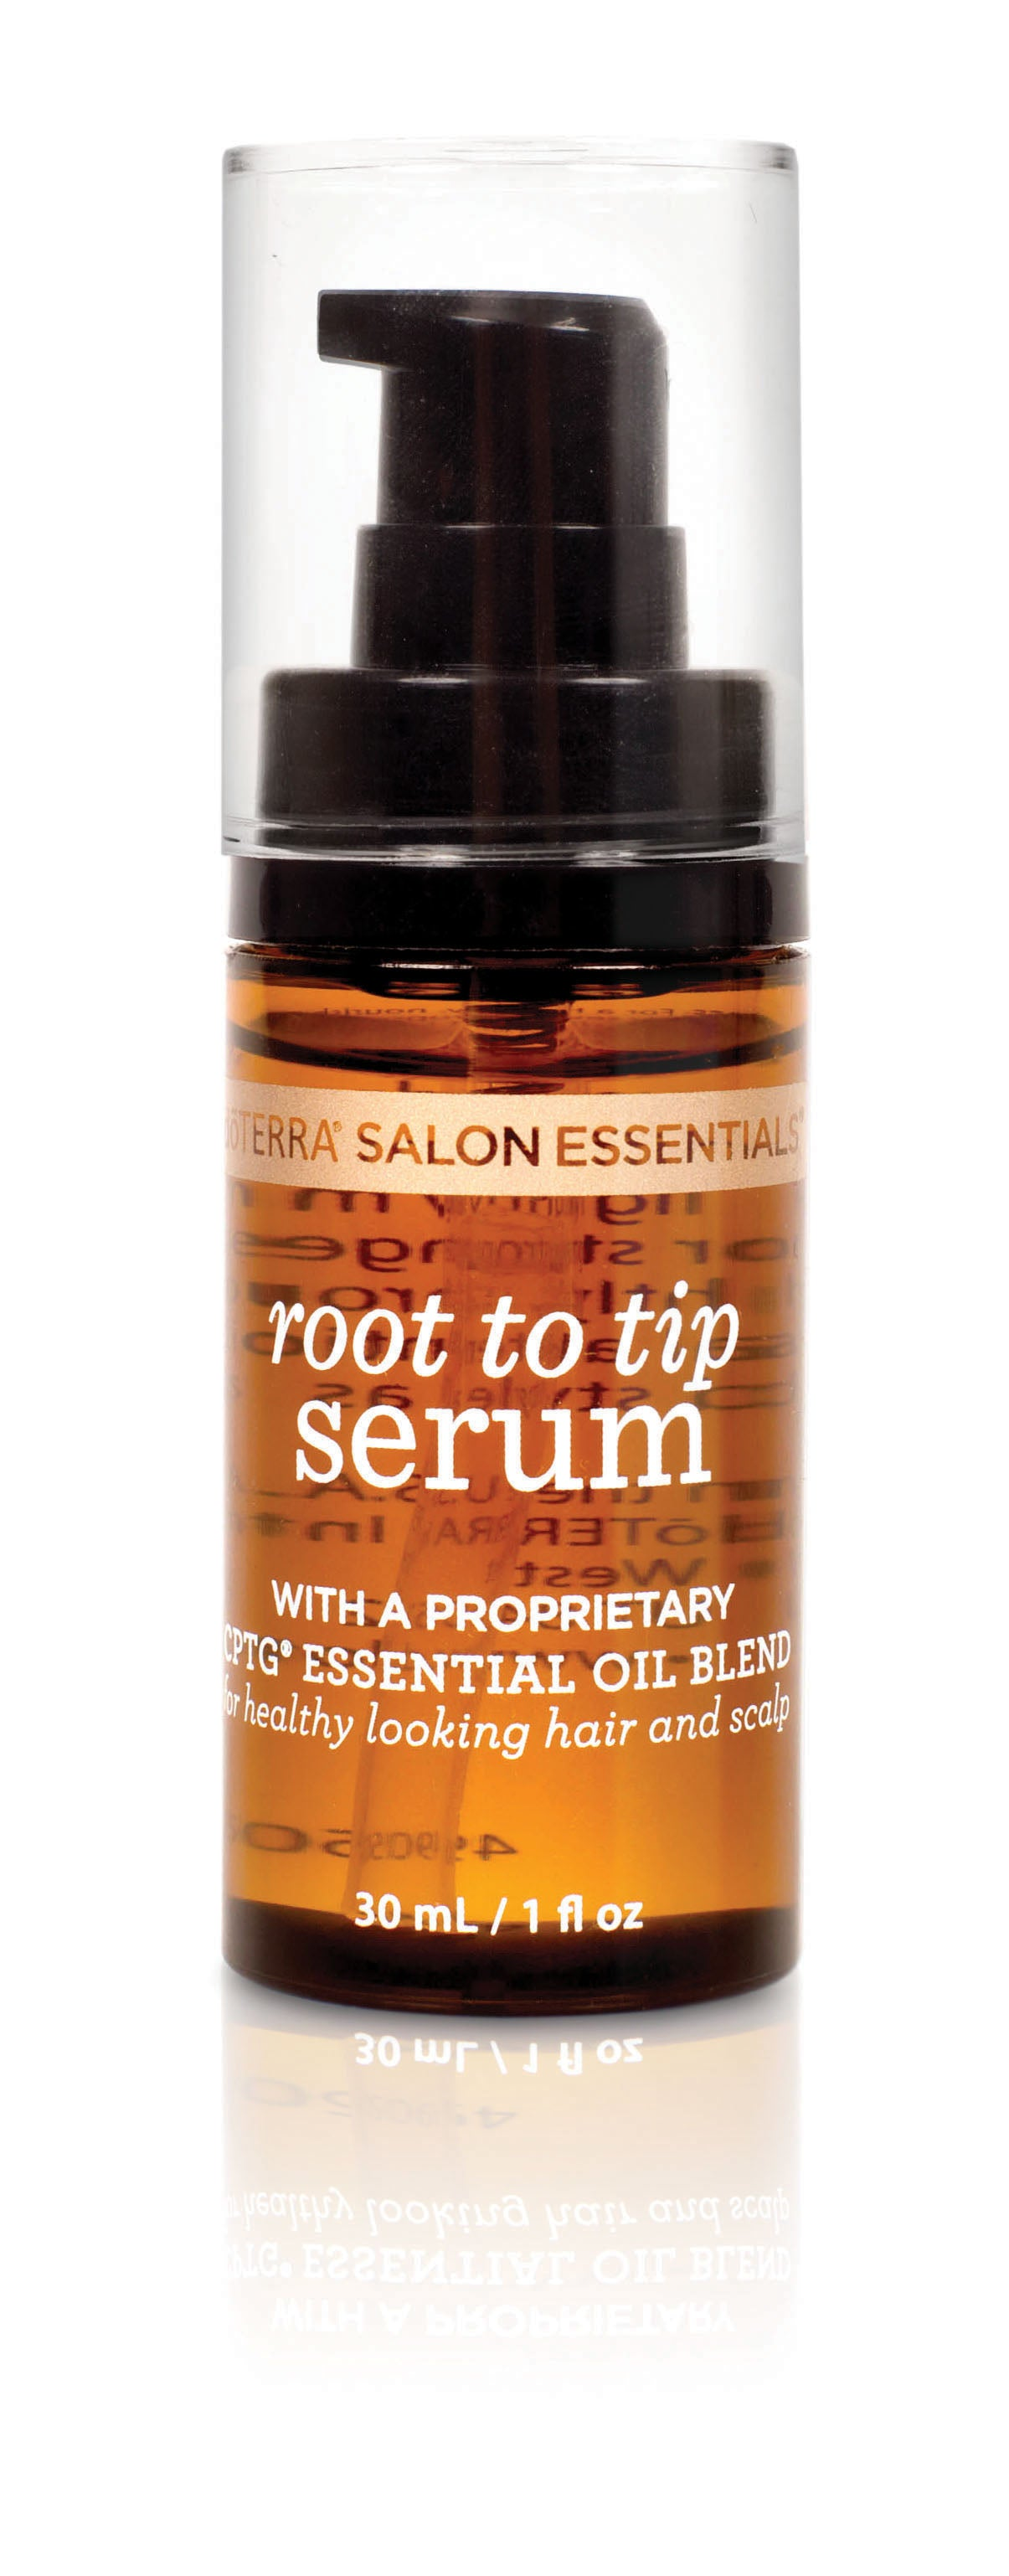 doTERRA Salon Essentials Root to Tip Serum - Purity of Earth